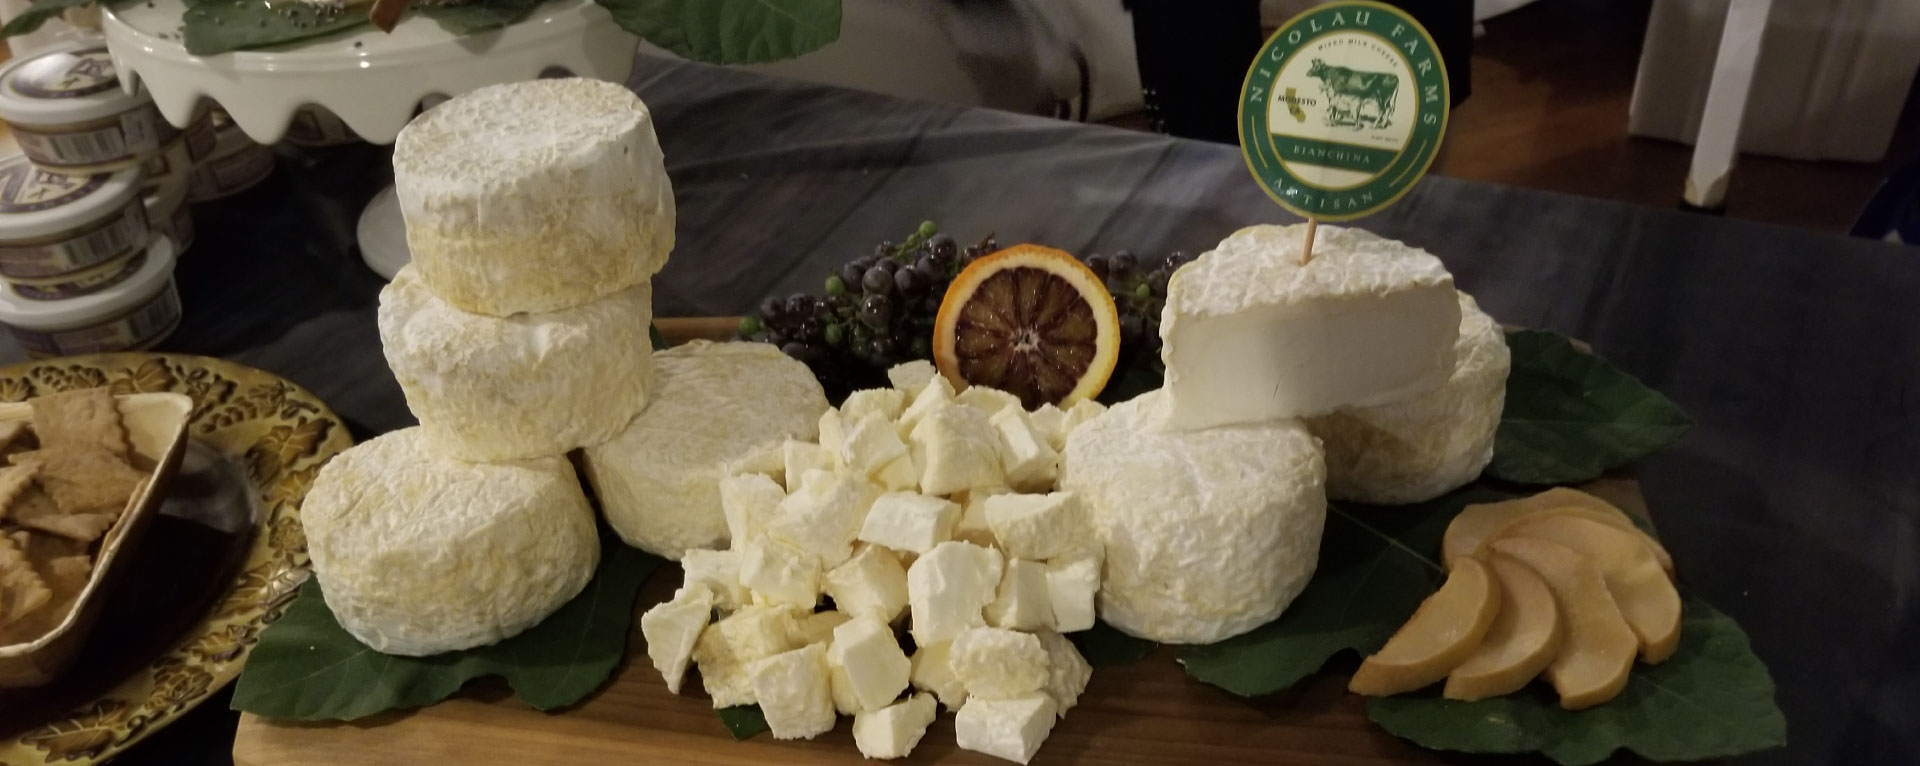 goat-cheese-nicolau-farm